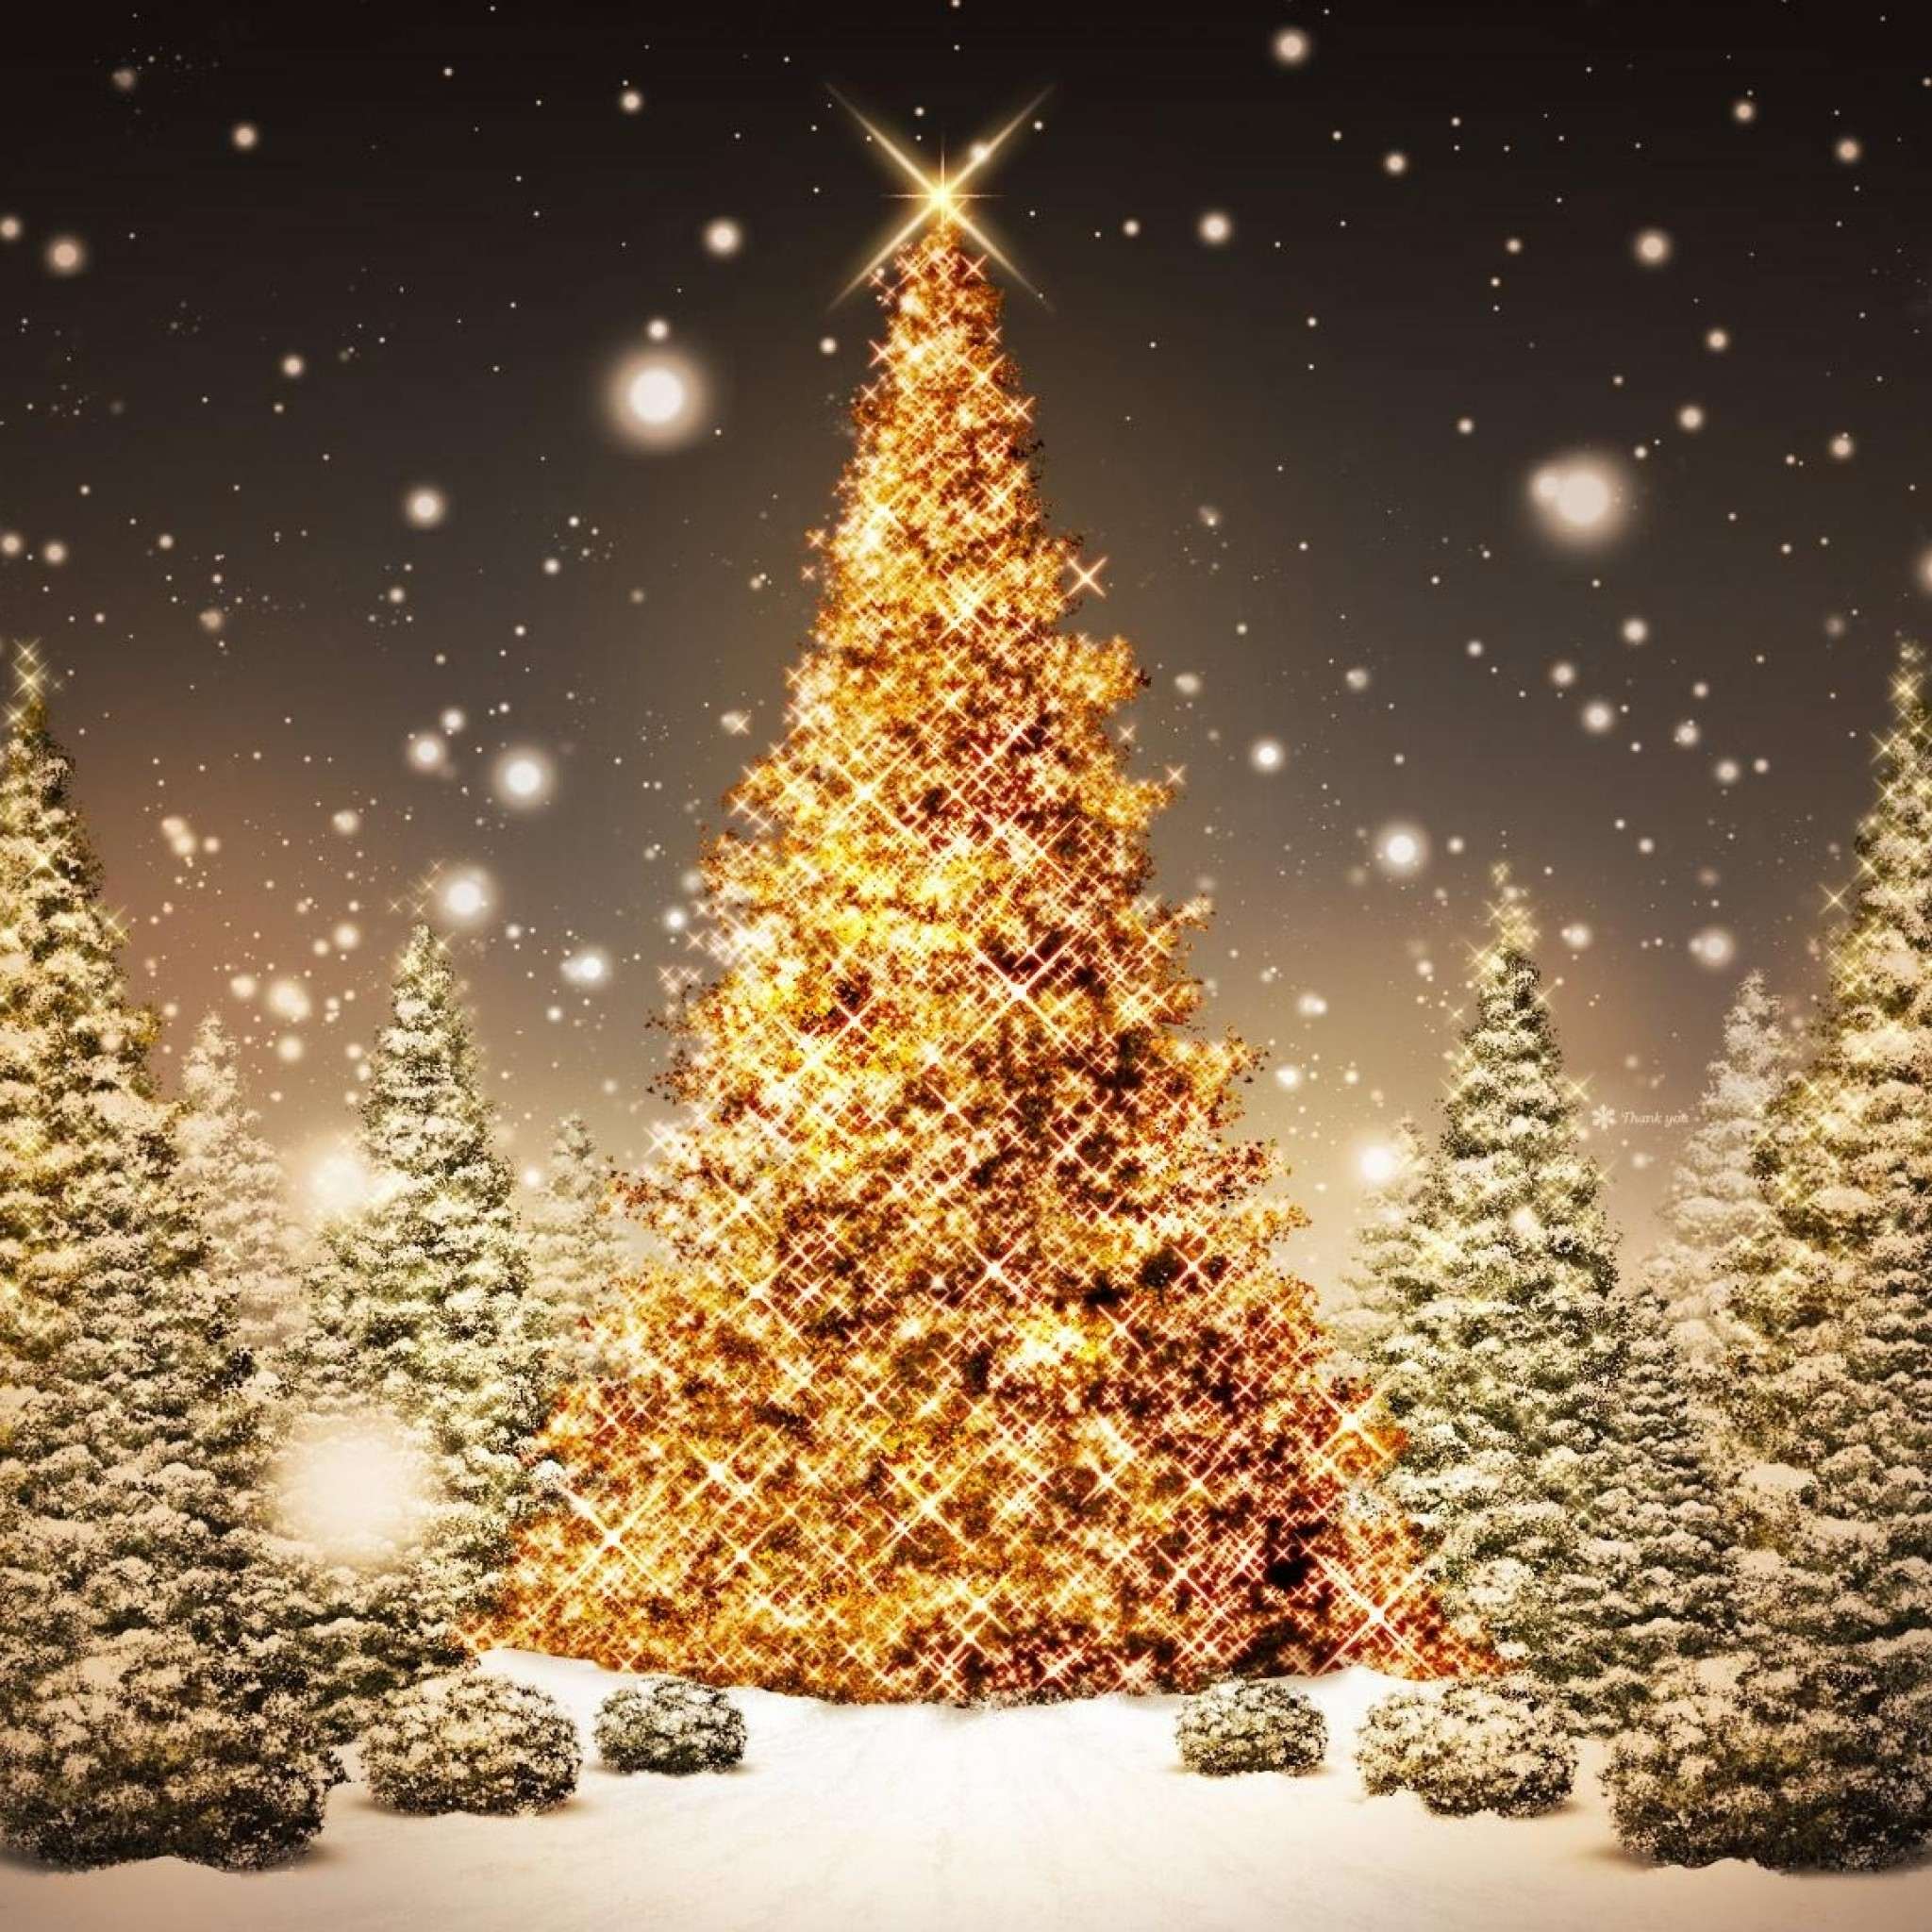 gold christmas tree wallpaper - photo #2